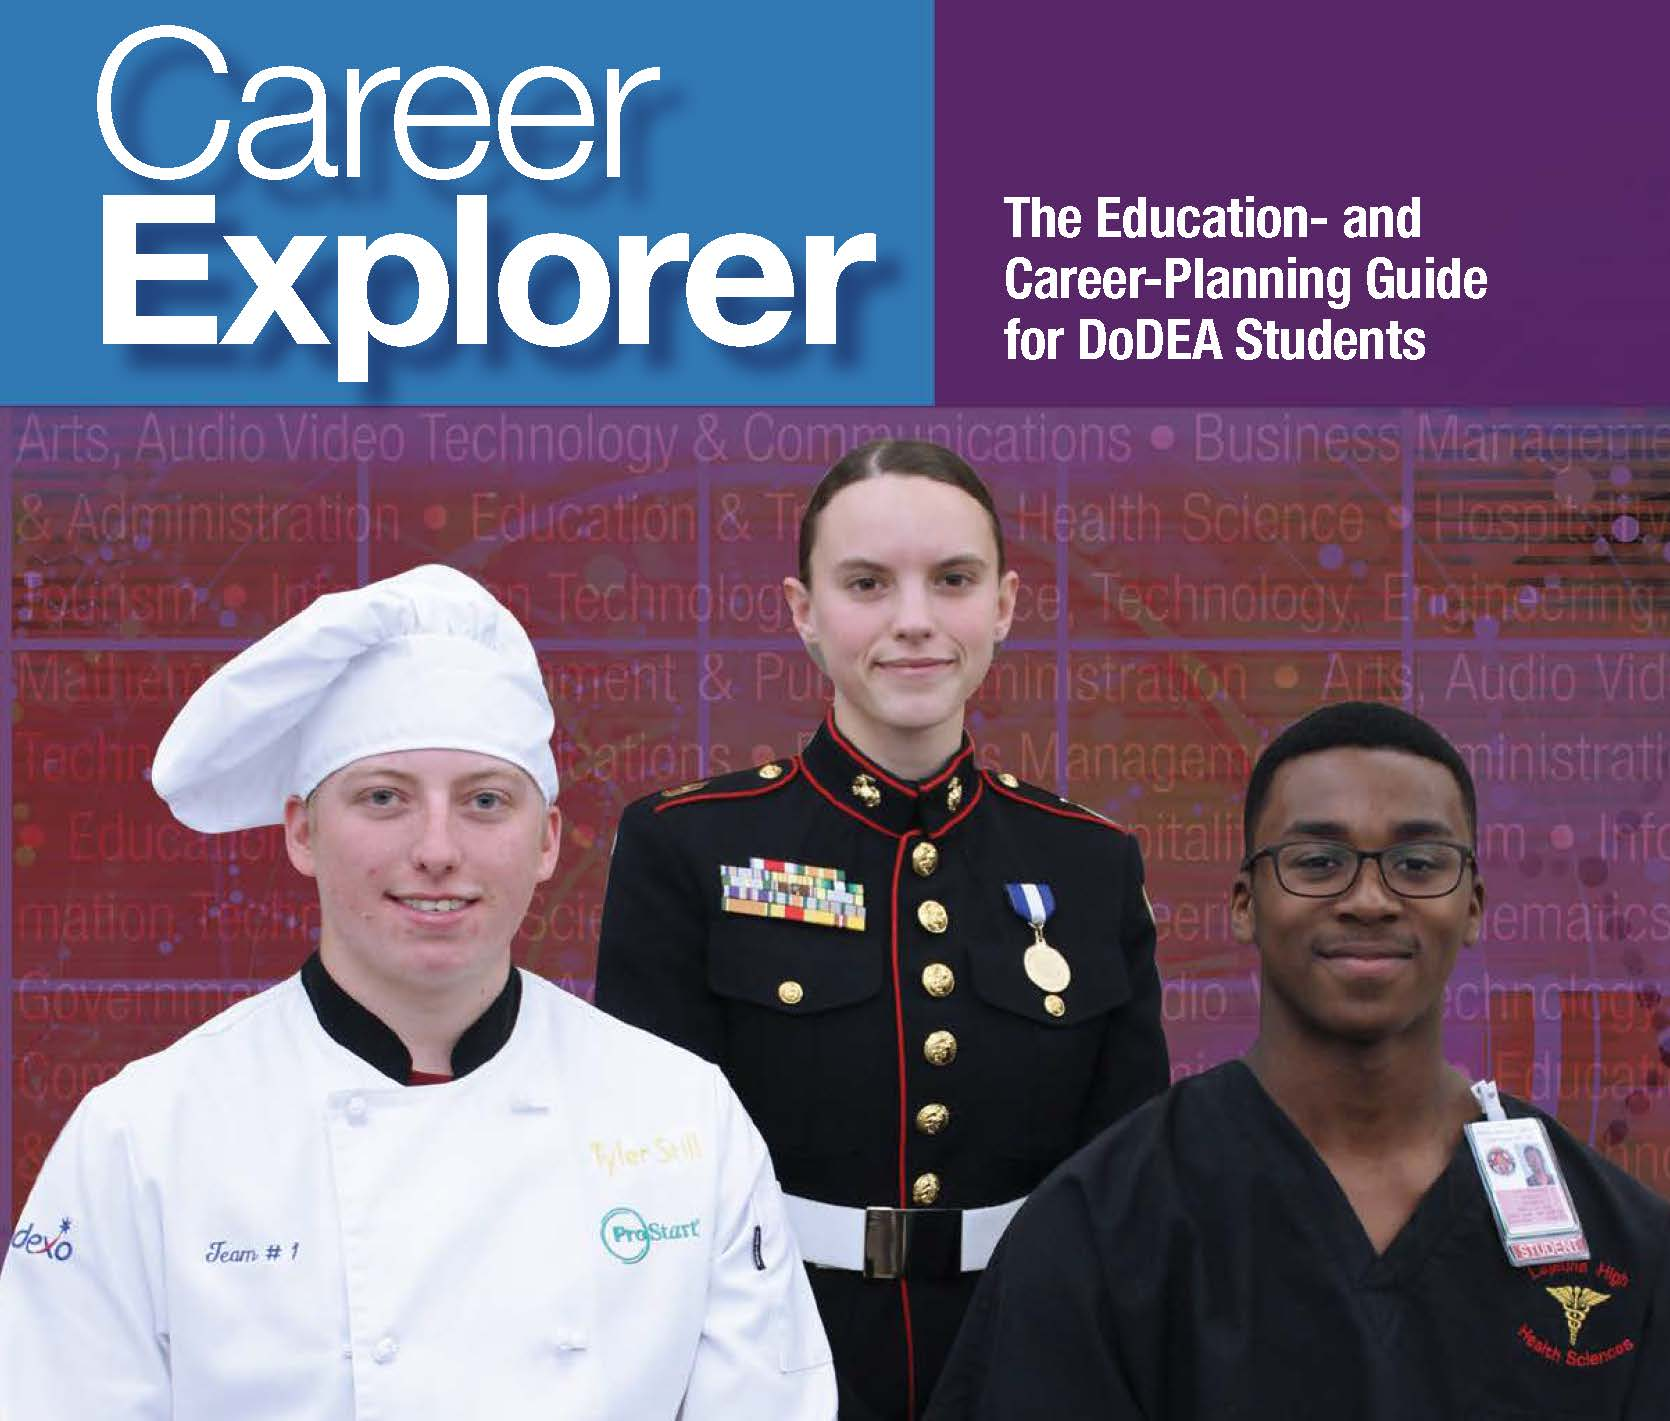 DoDEA Career Pathways and Career Clusters